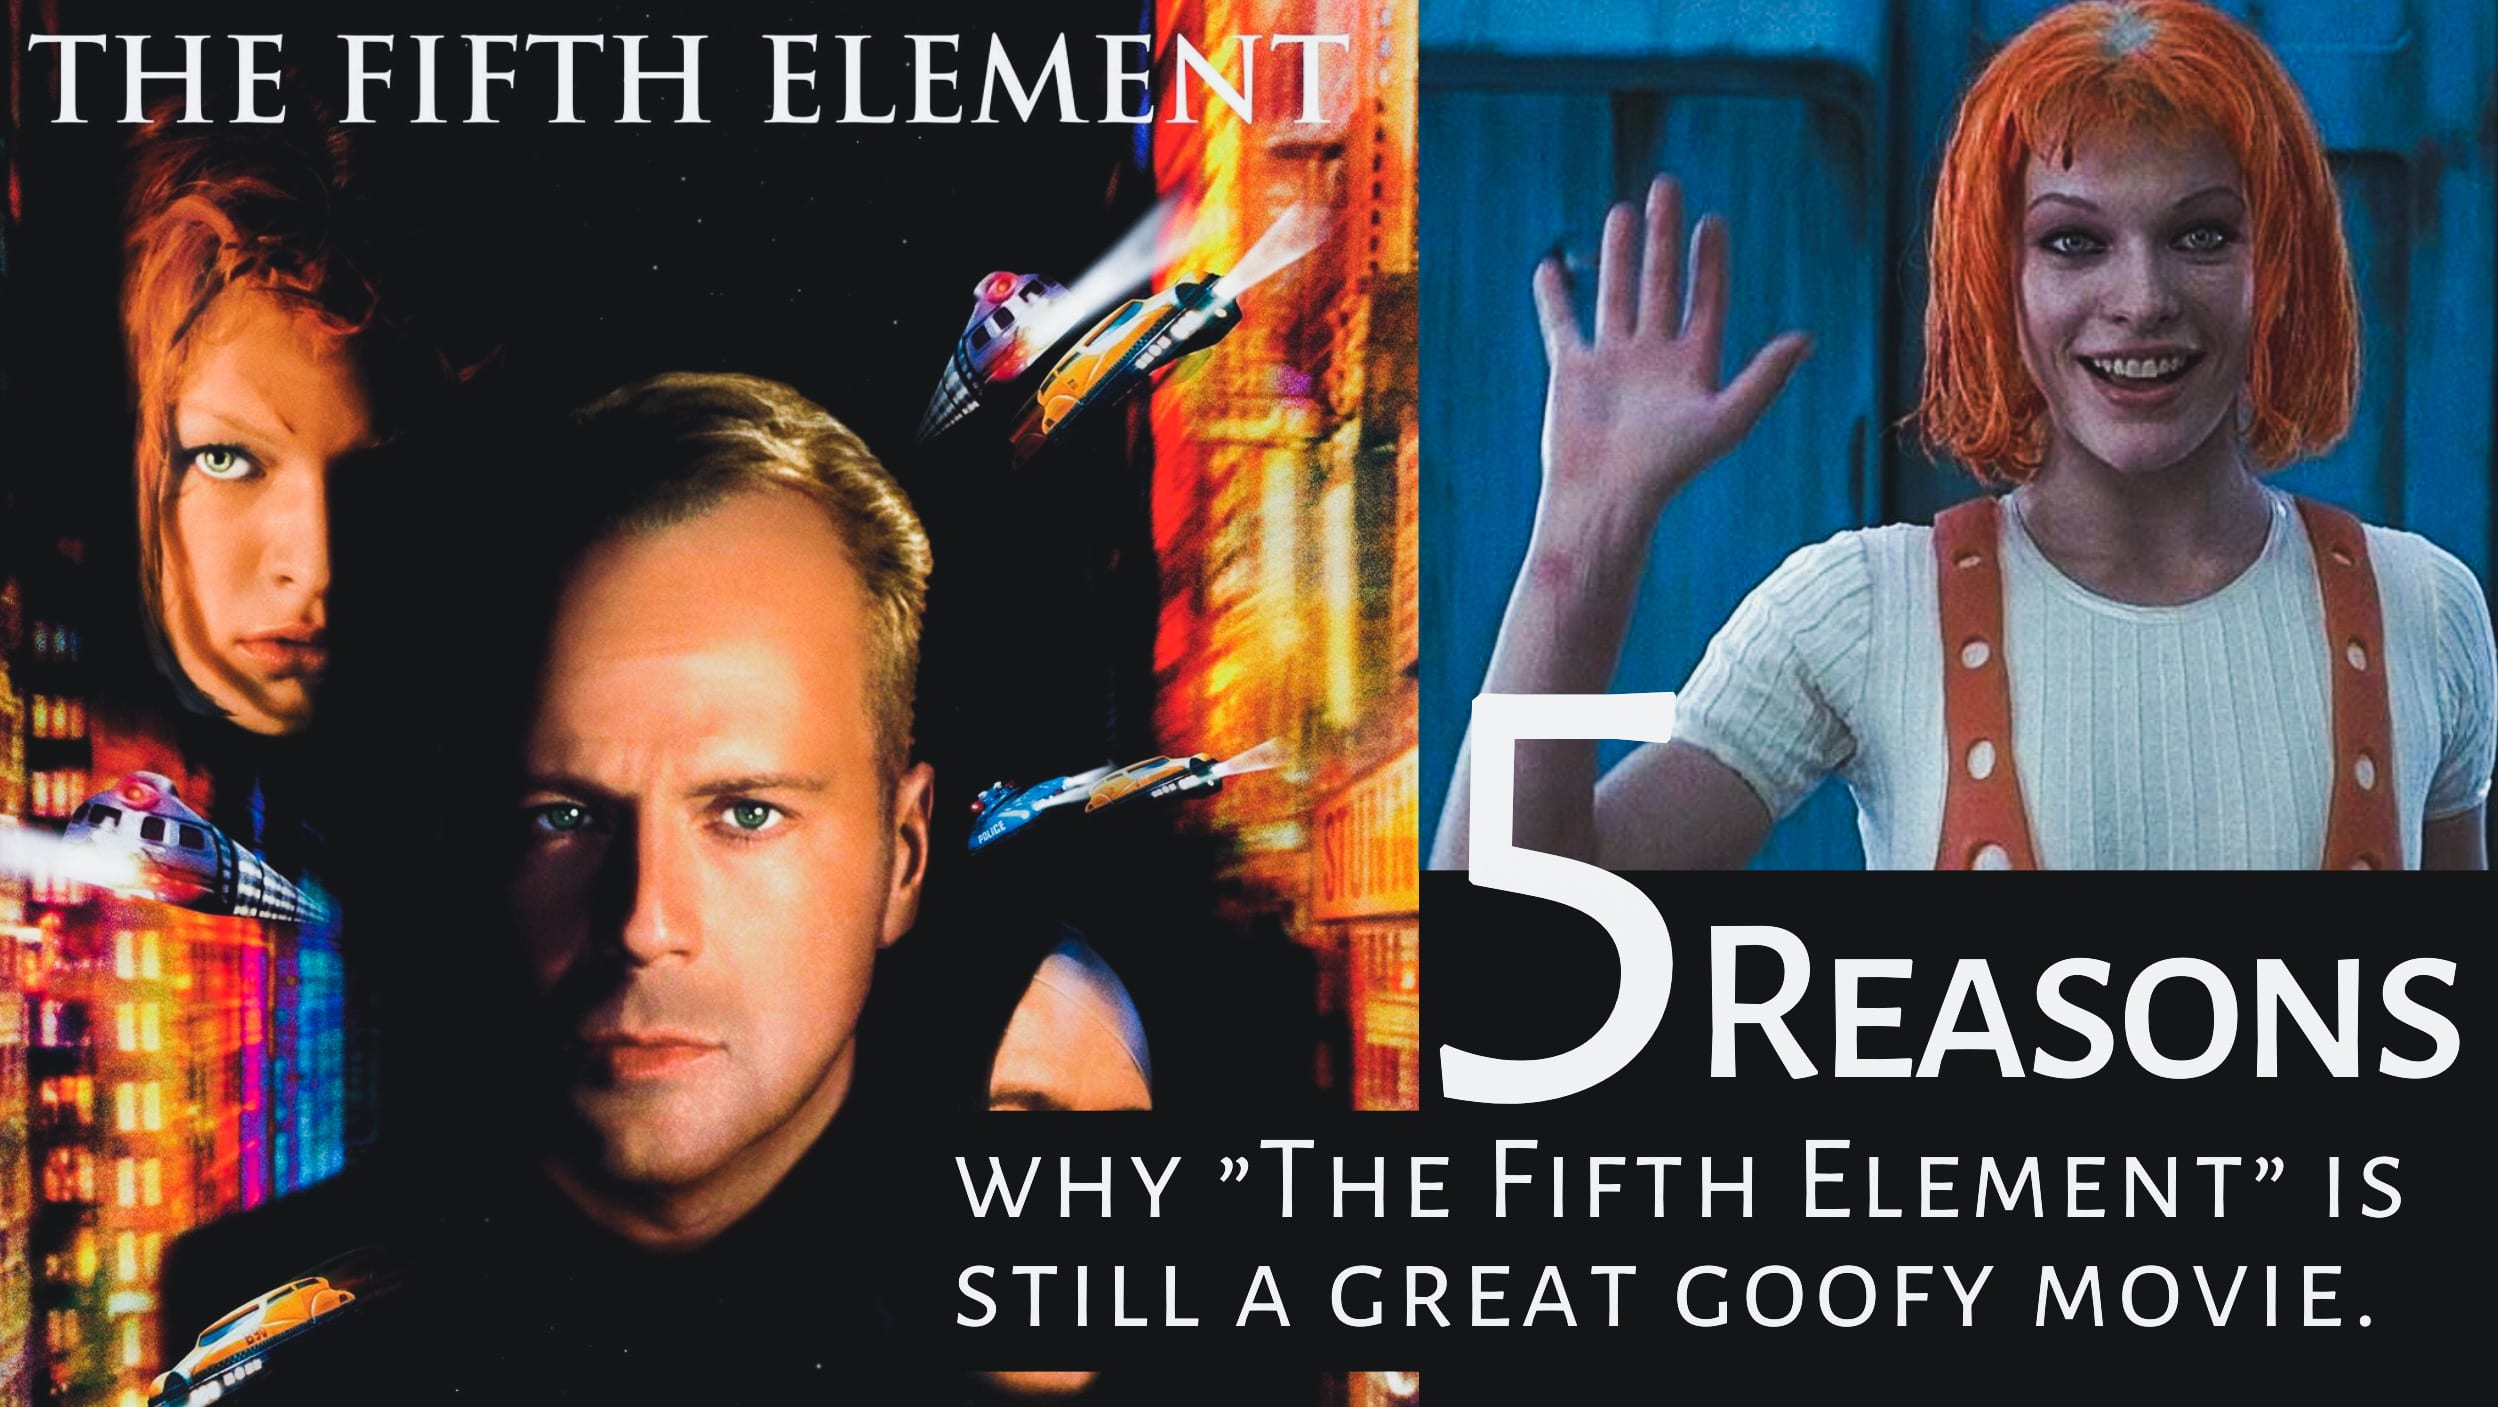 5 Reasons Why The Fifth Element 1997 Is Still A Great Goofy Movie